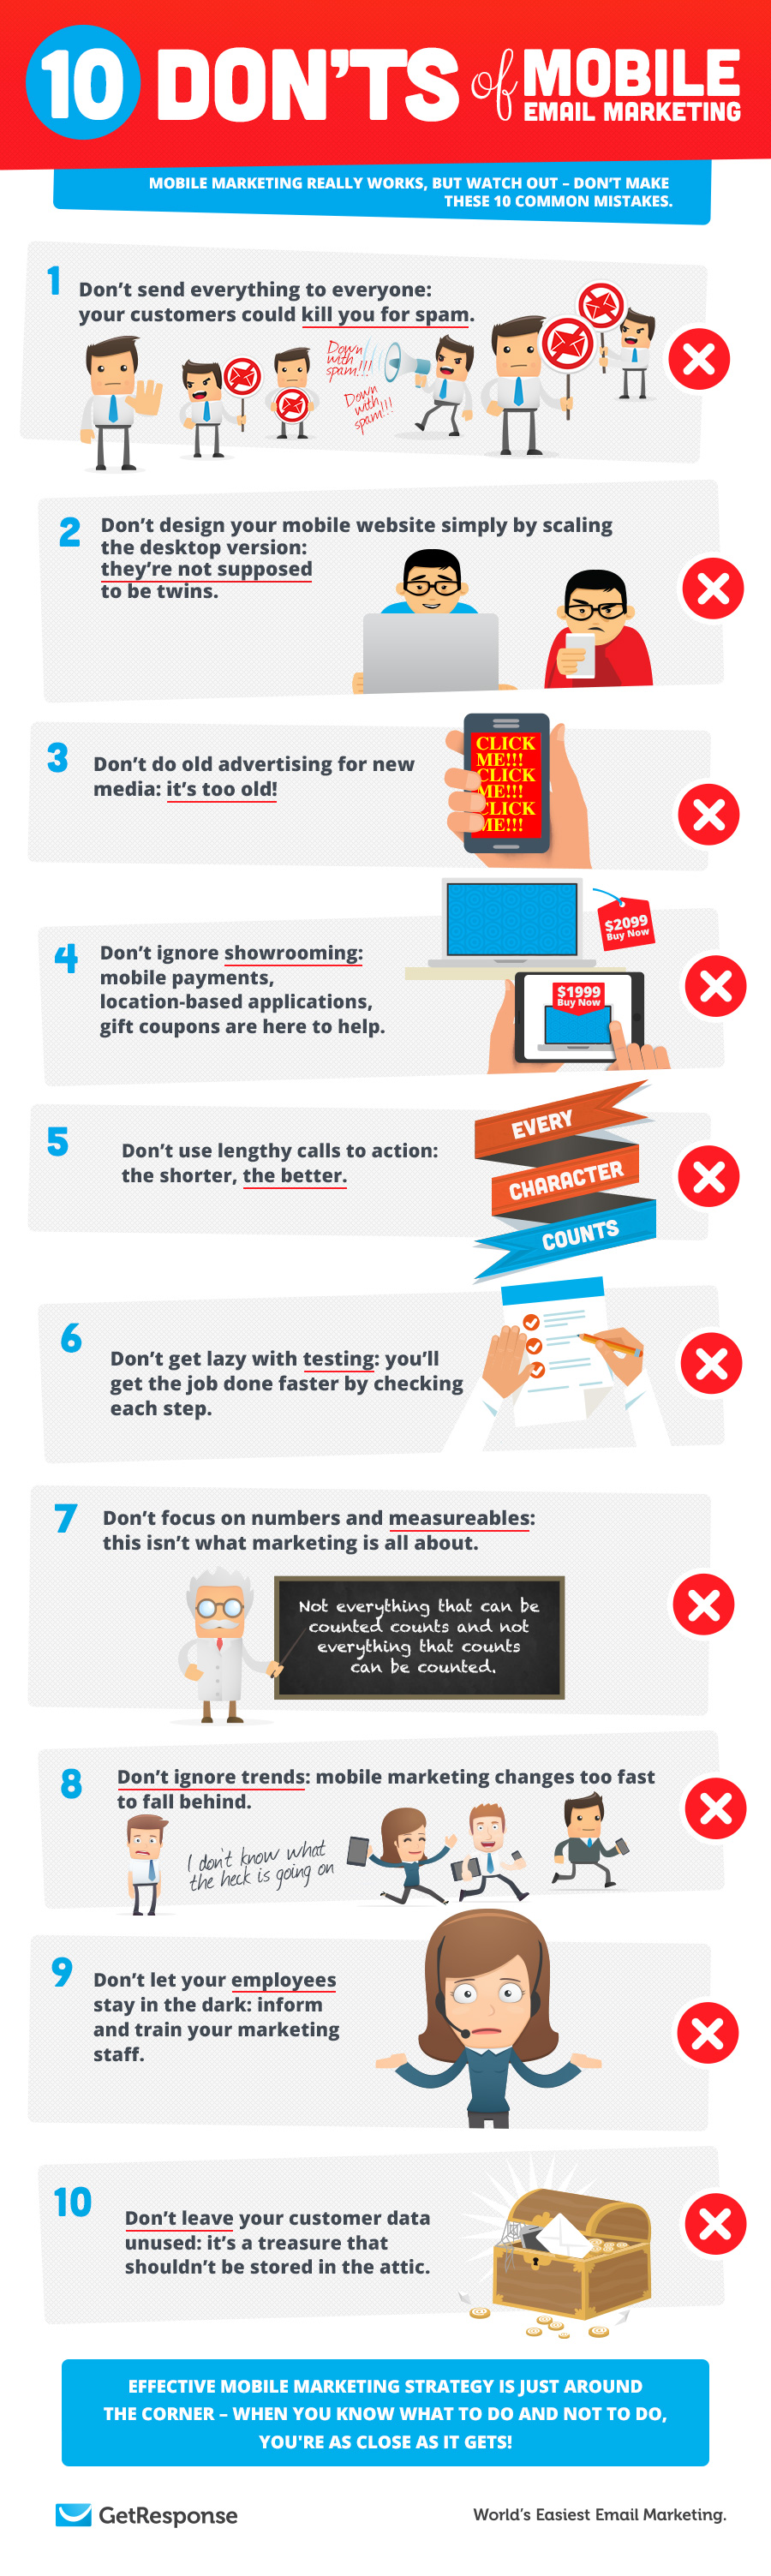 10 Don'ts of Mobile Email Marketing